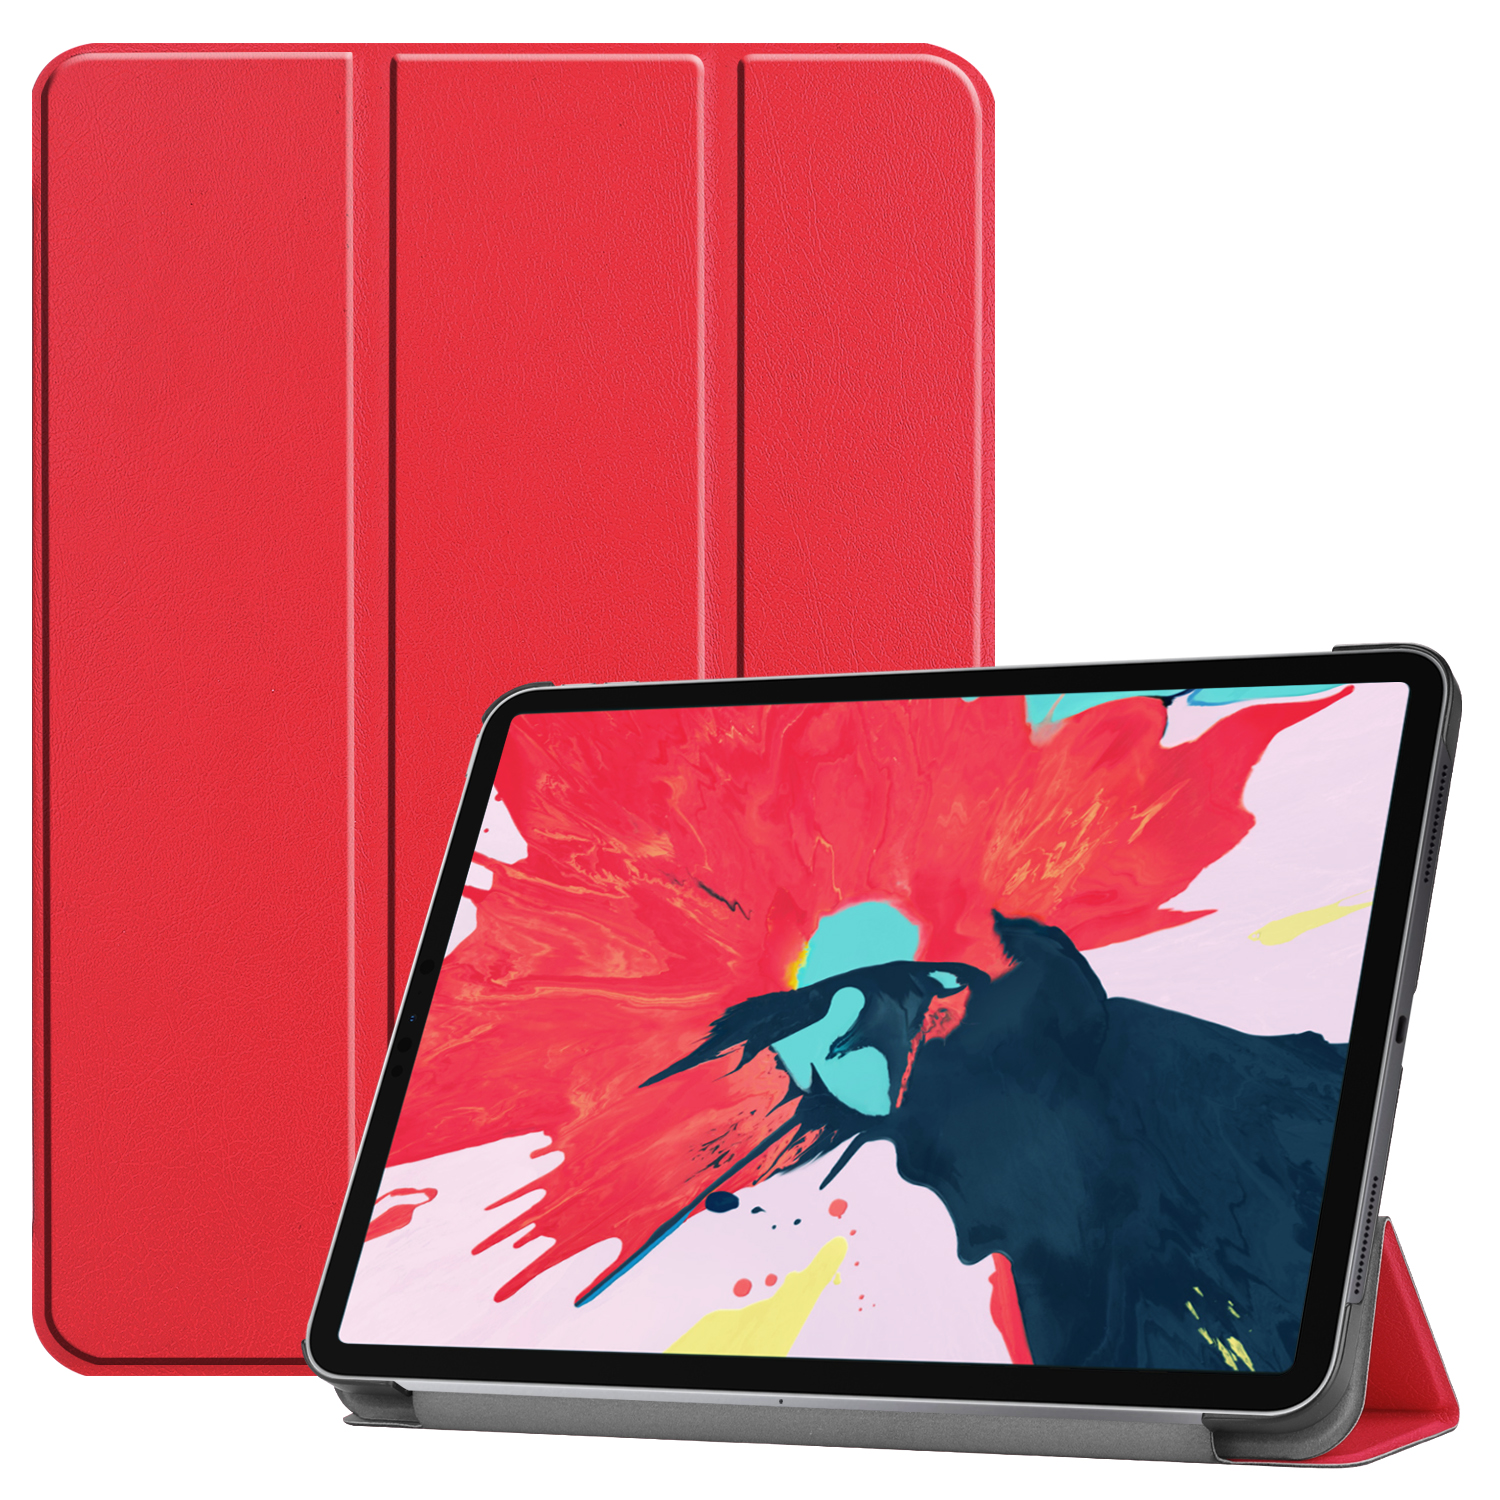 Tablet PC Protective Case Ultra-thin Smart Cover for iPad pro 11(2020) red